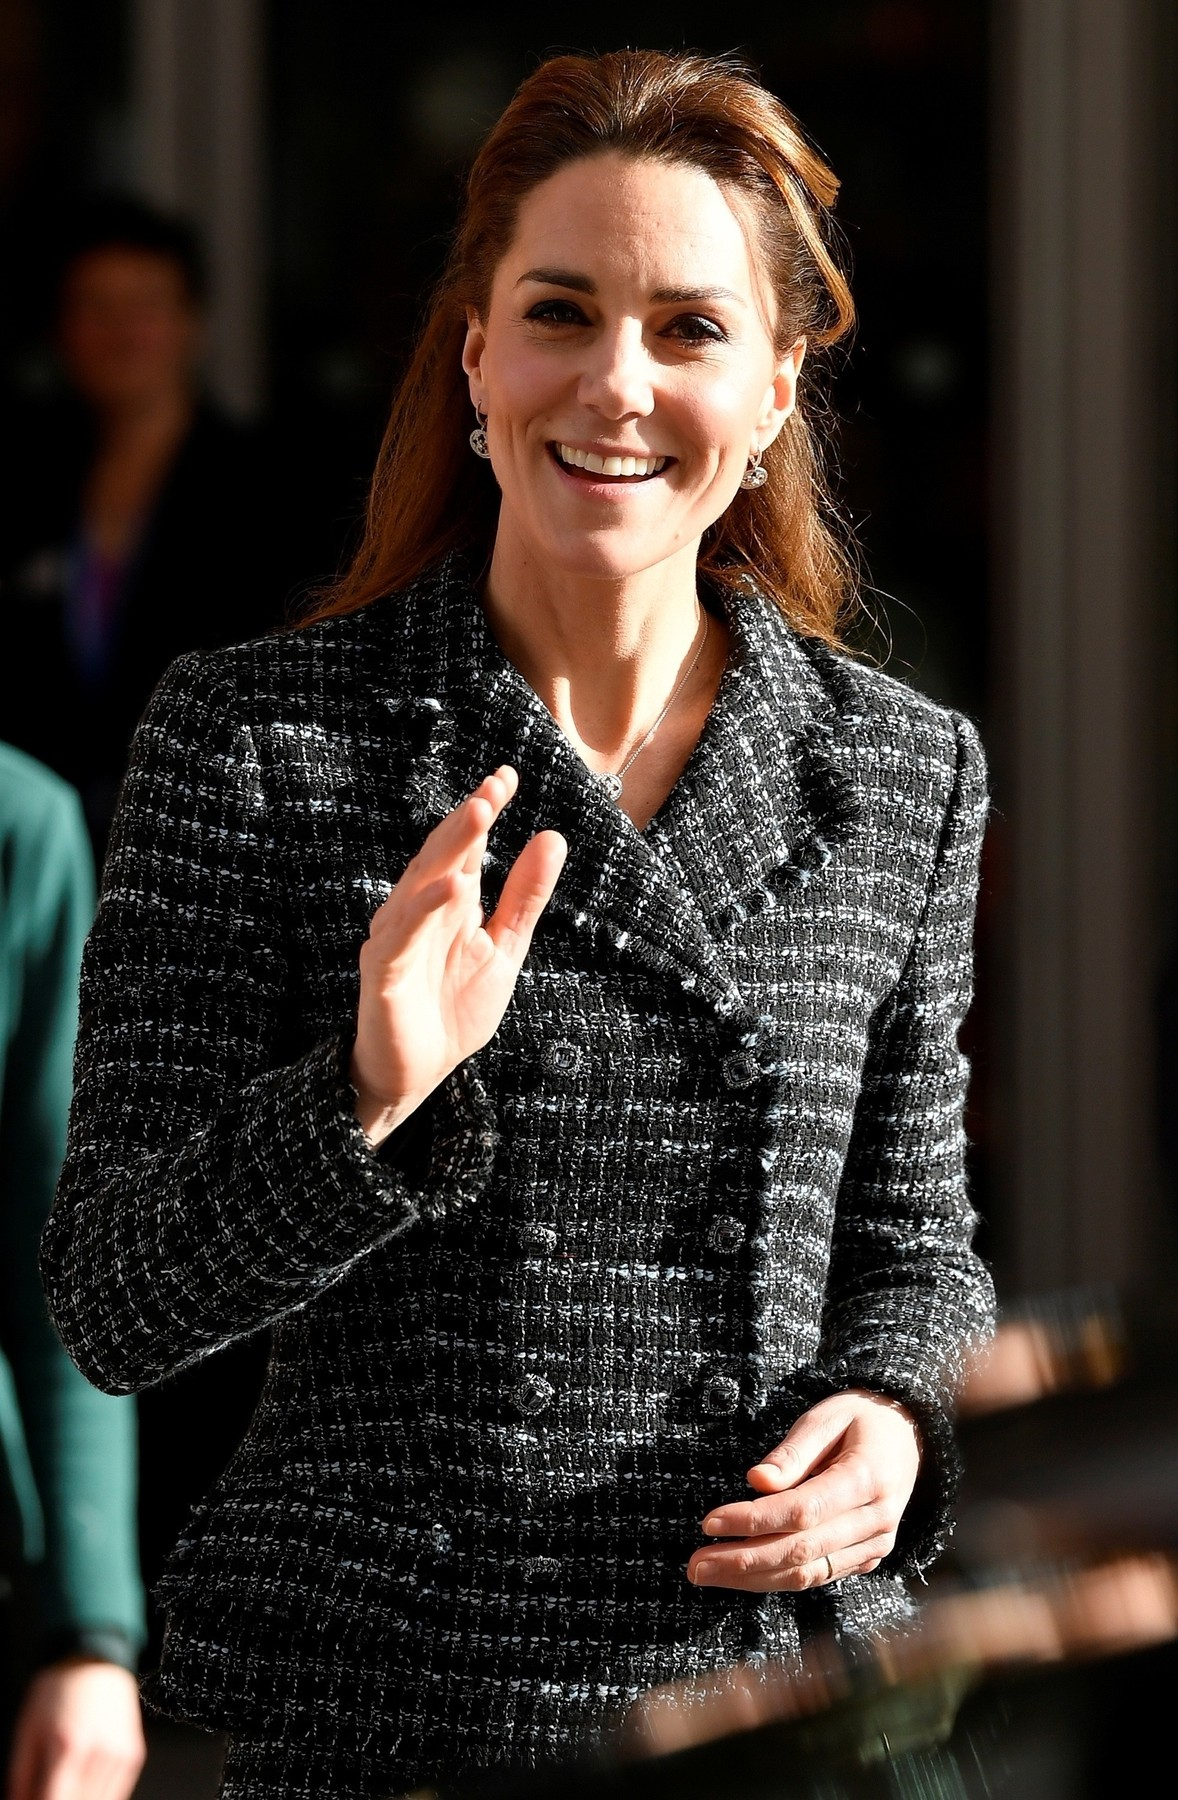 London, UNITED KINGDOM  - Catherine Duchess of Cambridge attends a National Portrait Gallery workshop at the Evelina Children's Hospital in London.  *UK Clients - Pictures Containing Children Please Pixelate Face Prior To Publication*, Image: 495317021, License: Rights-managed, Restrictions: RIGHTS: WORLDWIDE EXCEPT IN FRANCE, UNITED KINGDOM, Model Release: no, Credit line: BACKGRID / Backgrid UK / Profimedia